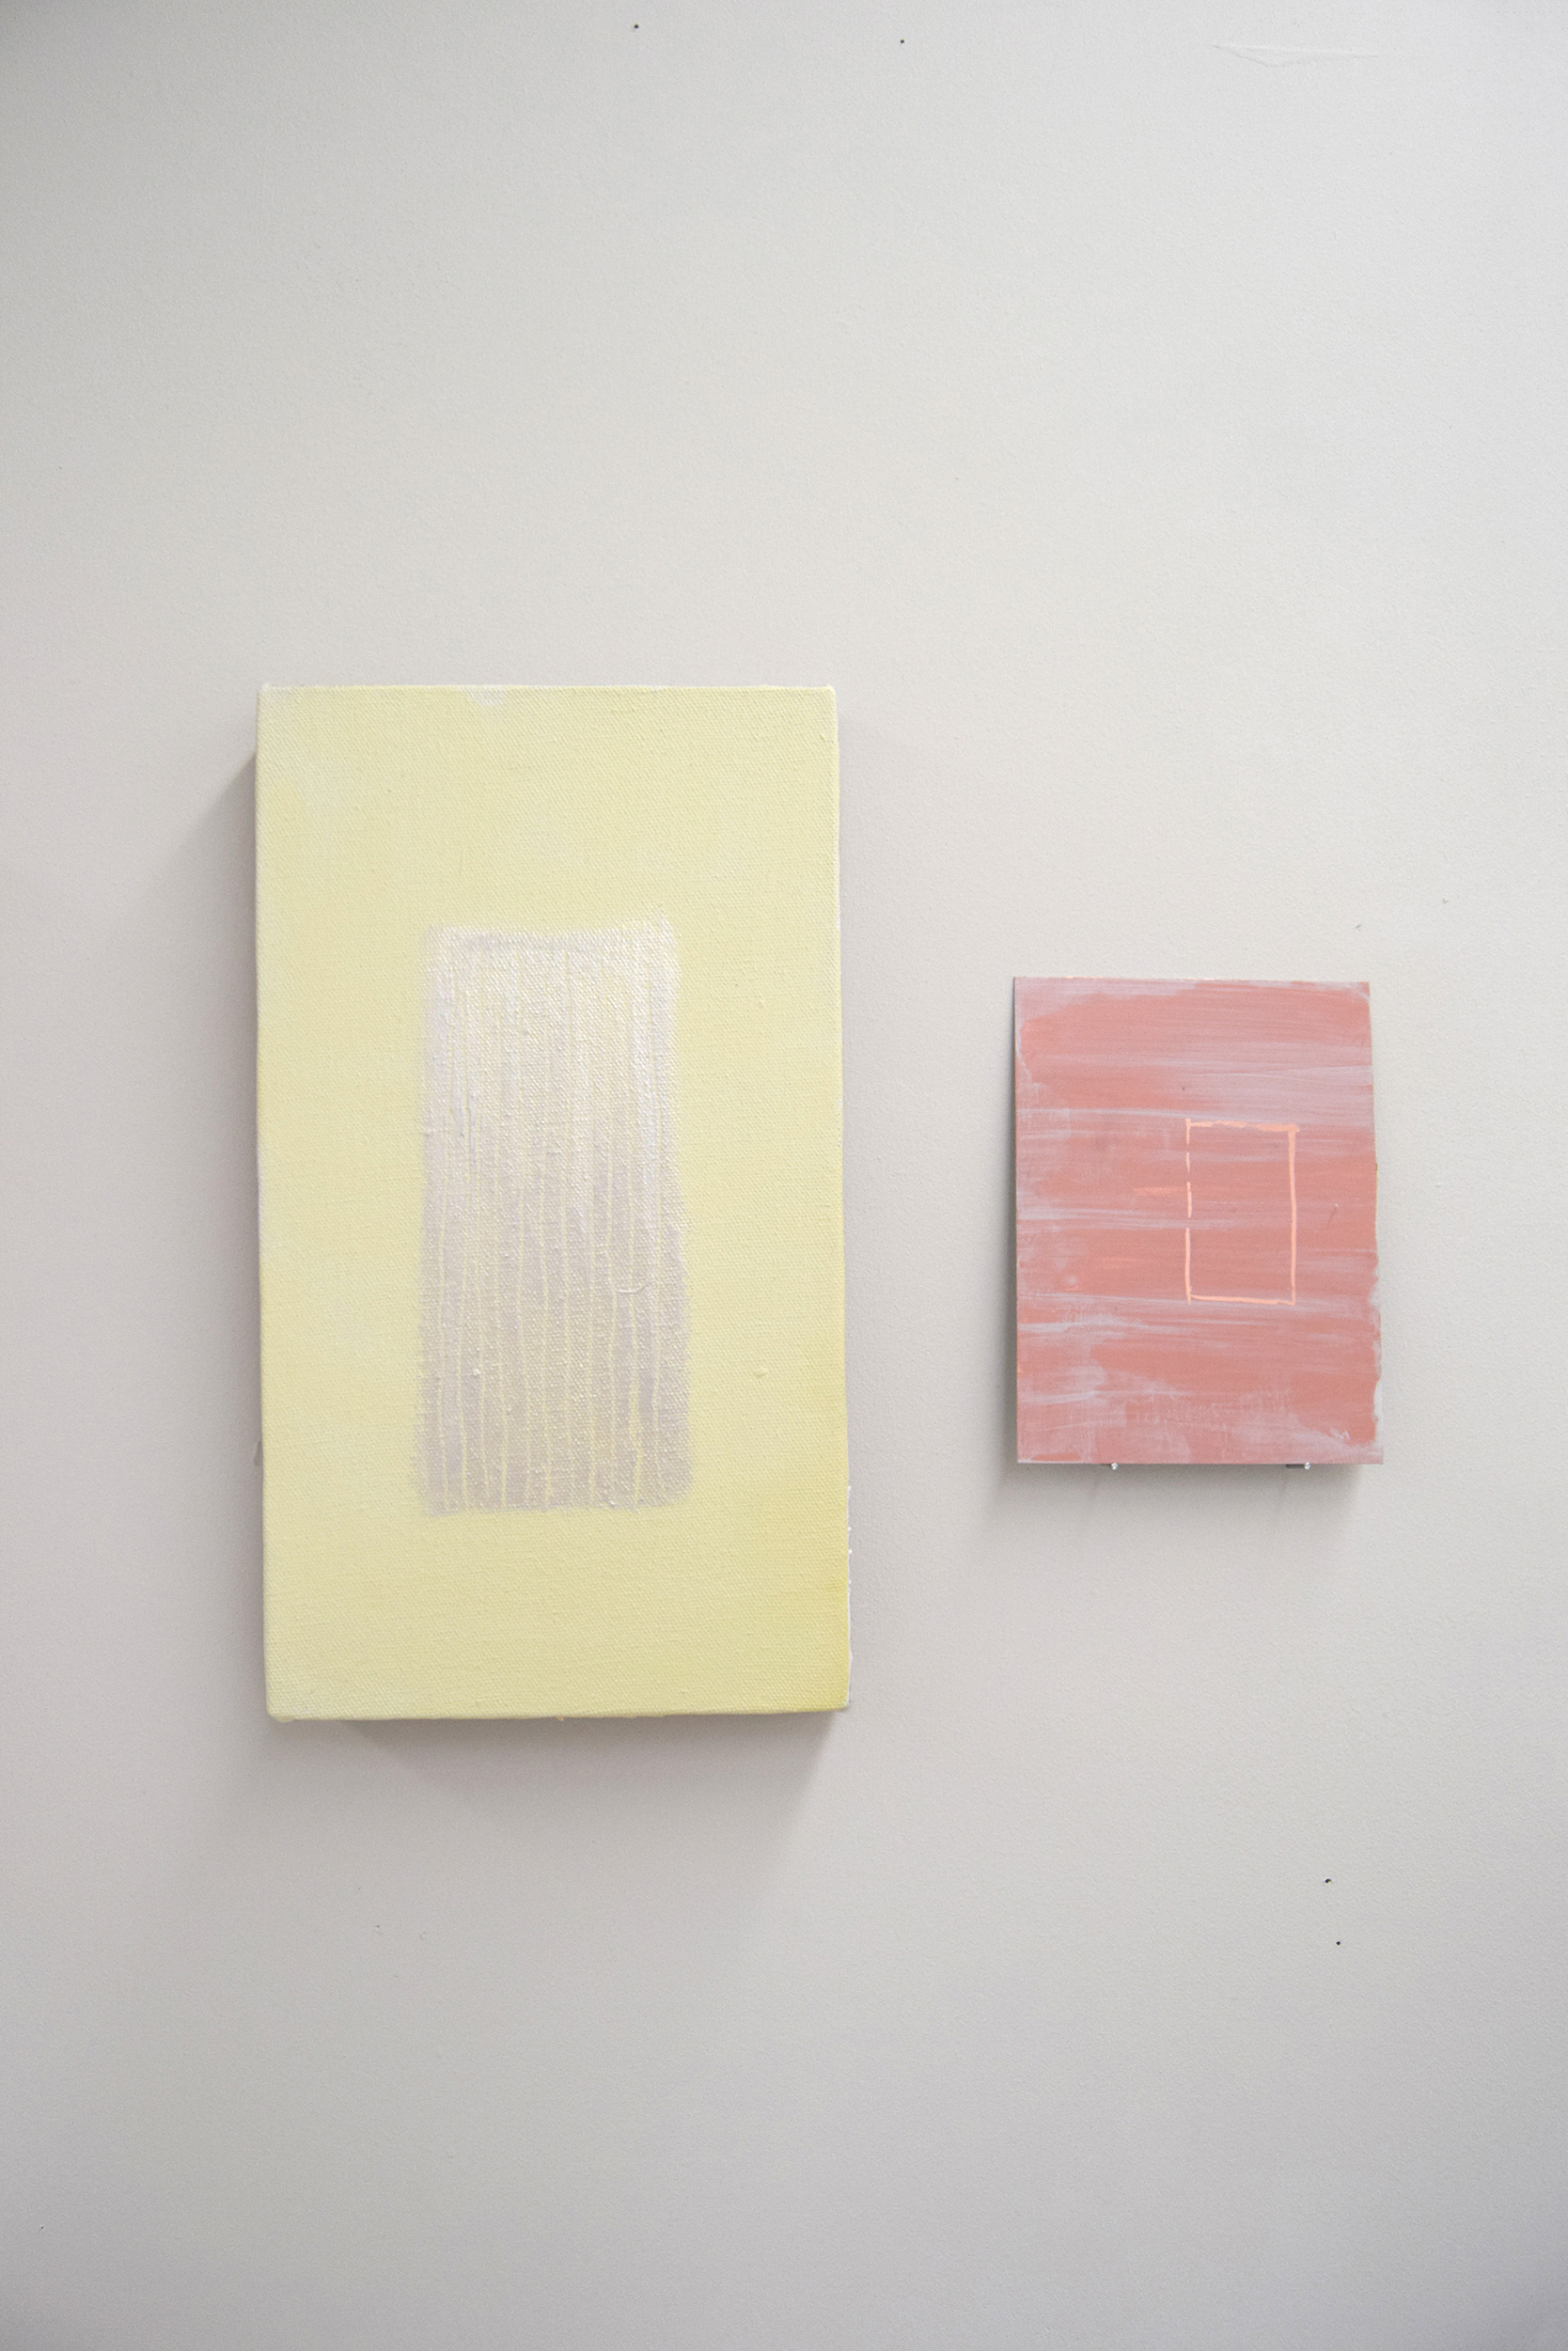 Two paintings, one is yellow with a shimmery centre and the other is copper with a rectangle scratched in